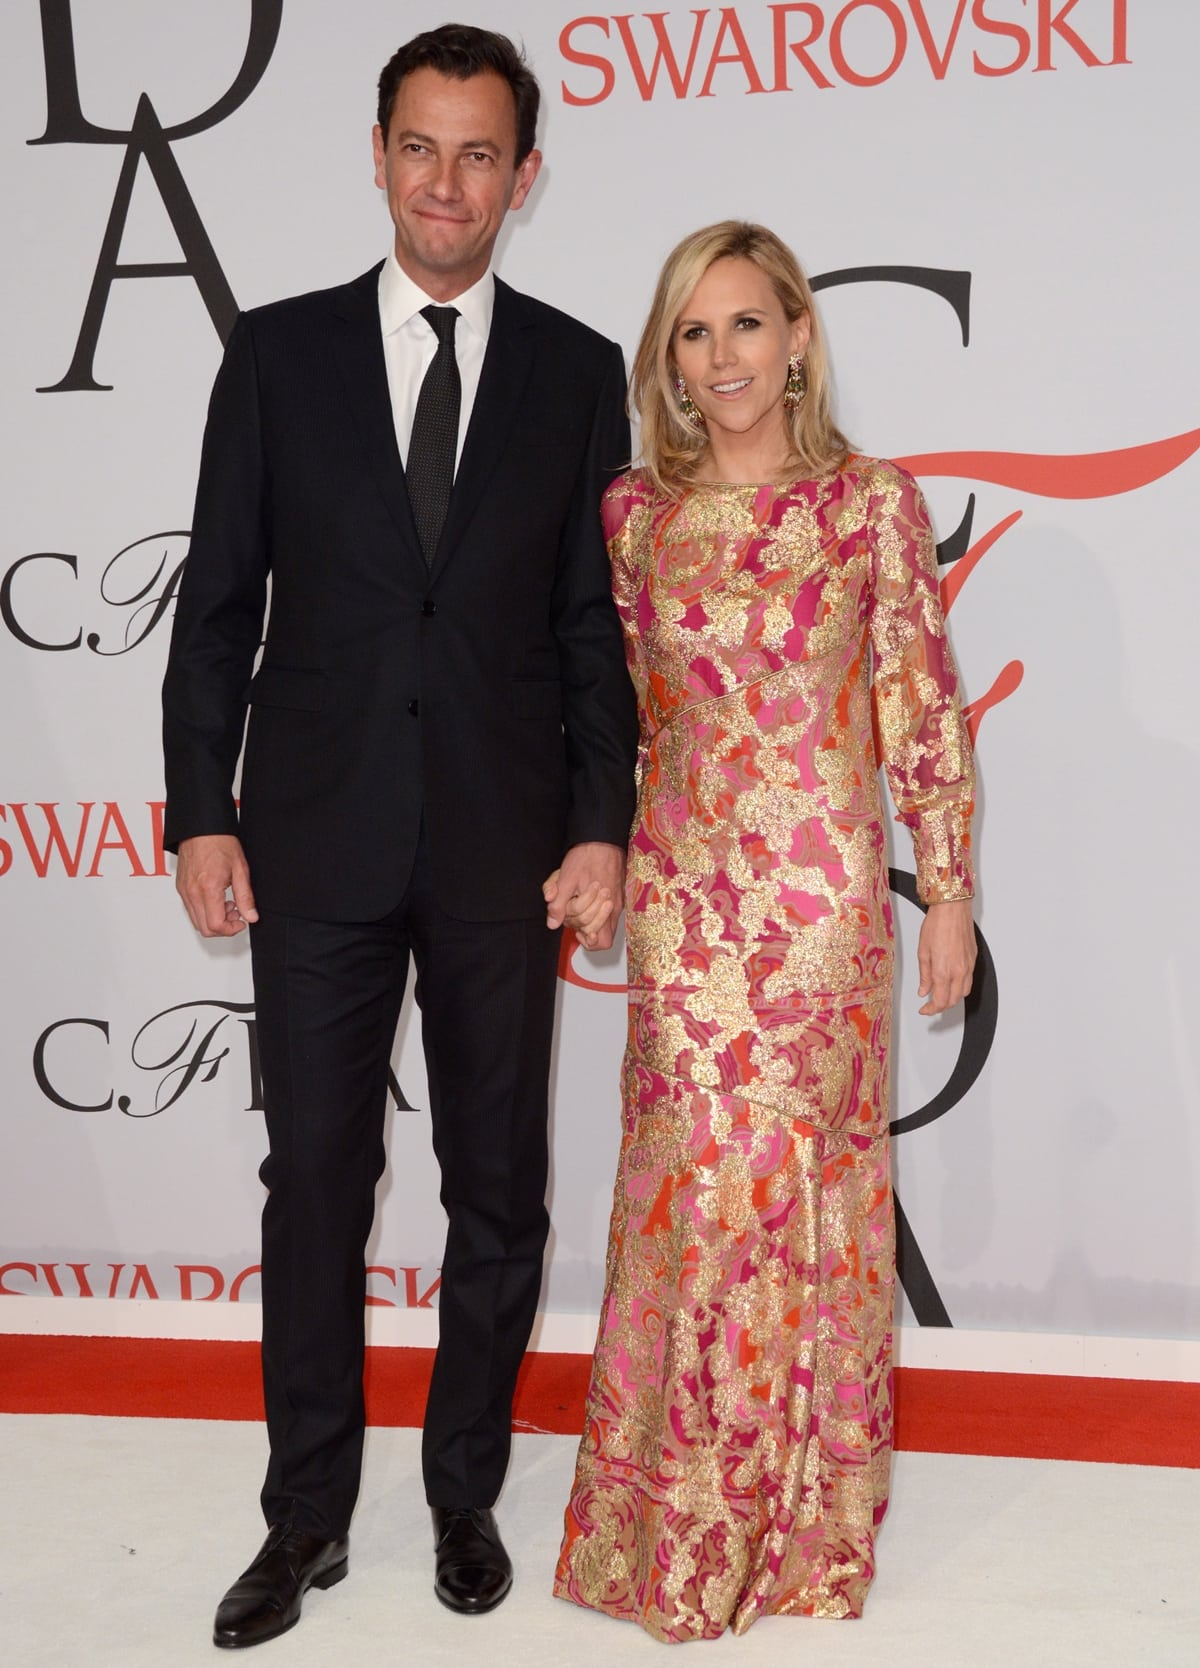 Tory Burch married her third husband, former LVMH executive Pierre-Yves Roussel, in 2018